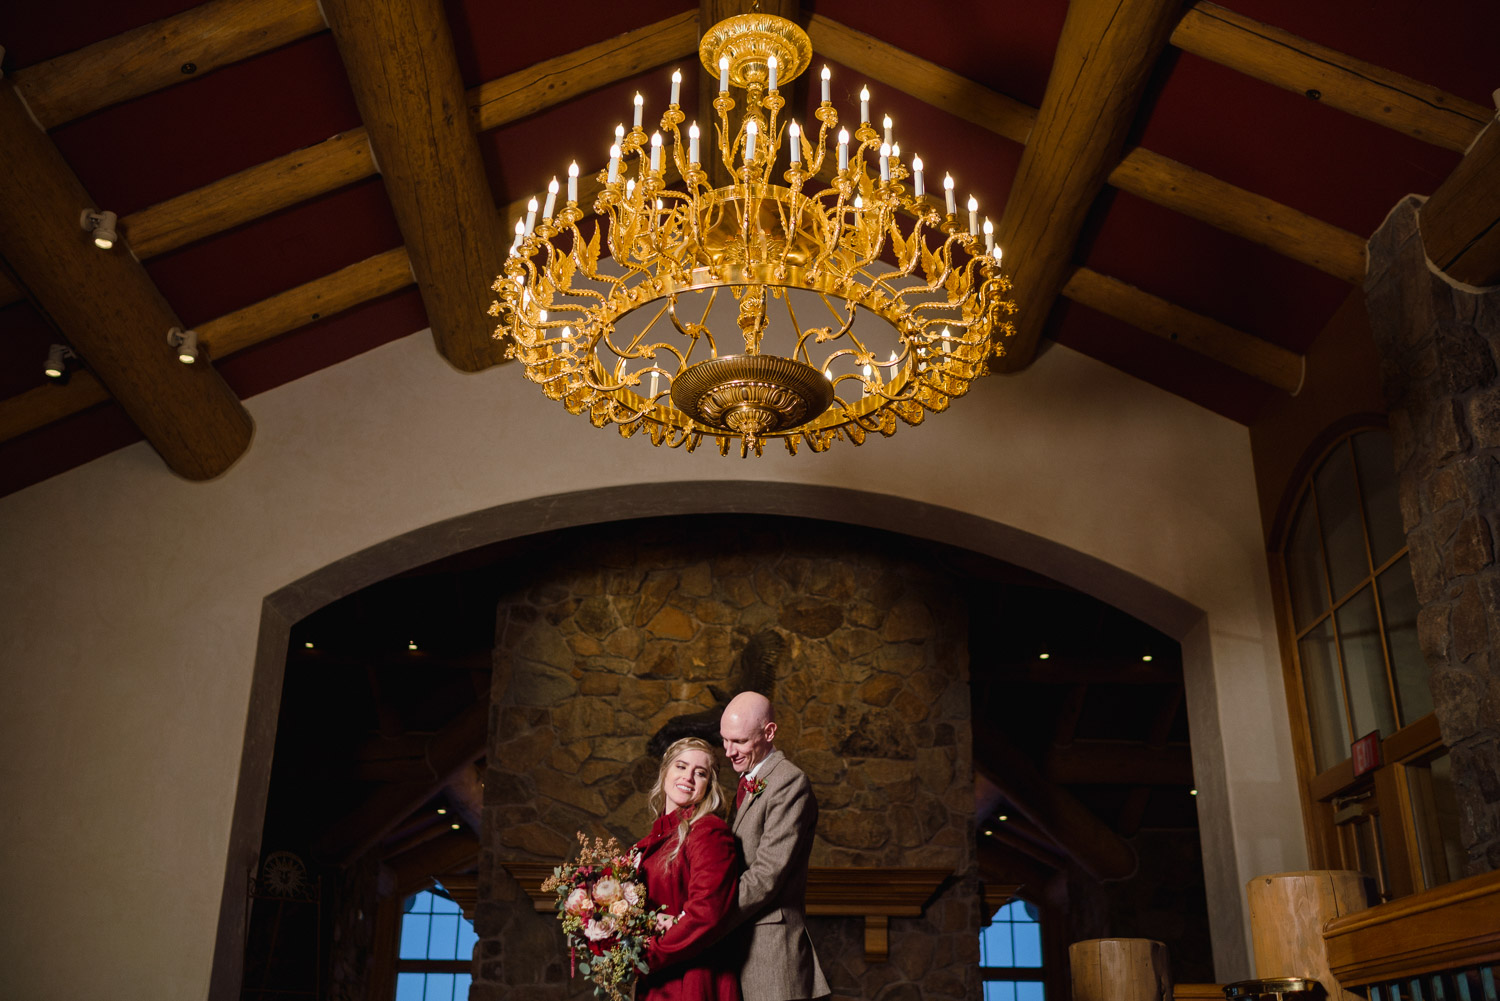 bride and groom under chandelier in lodge at snowbasin resort